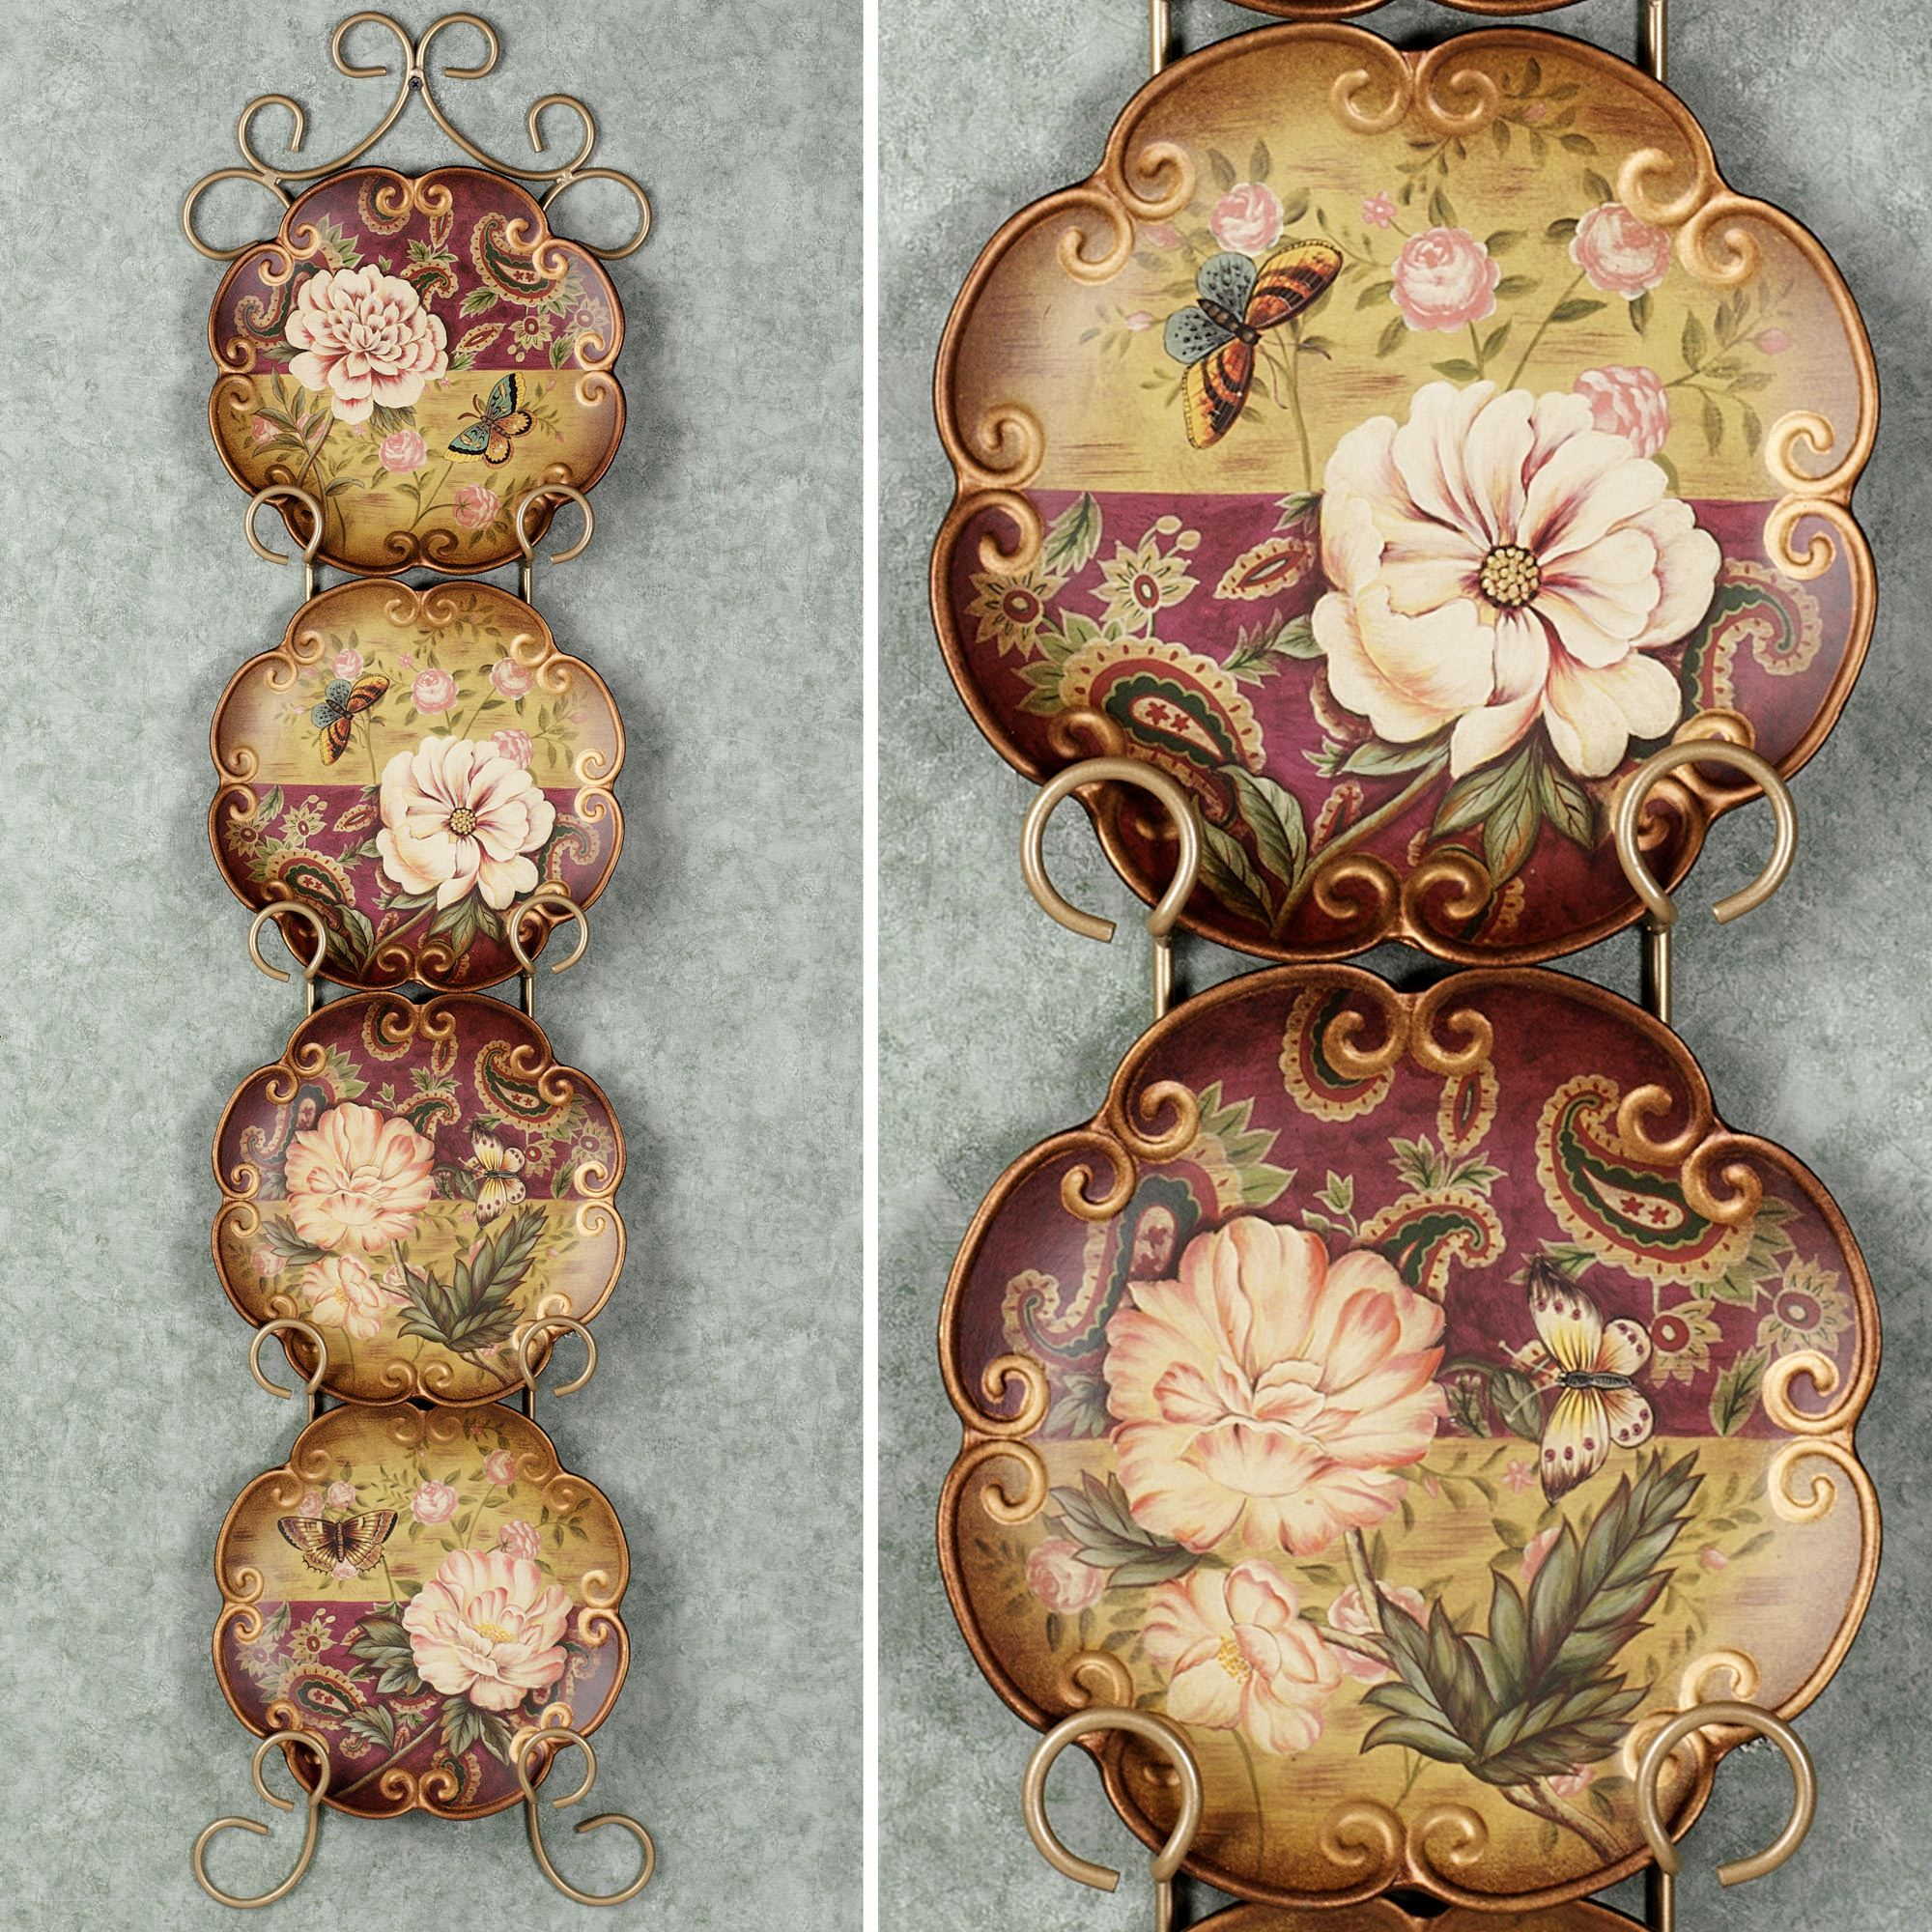 4 Inch Decorative Wall Plates Decorative Plates And Racks  Touch Of Class